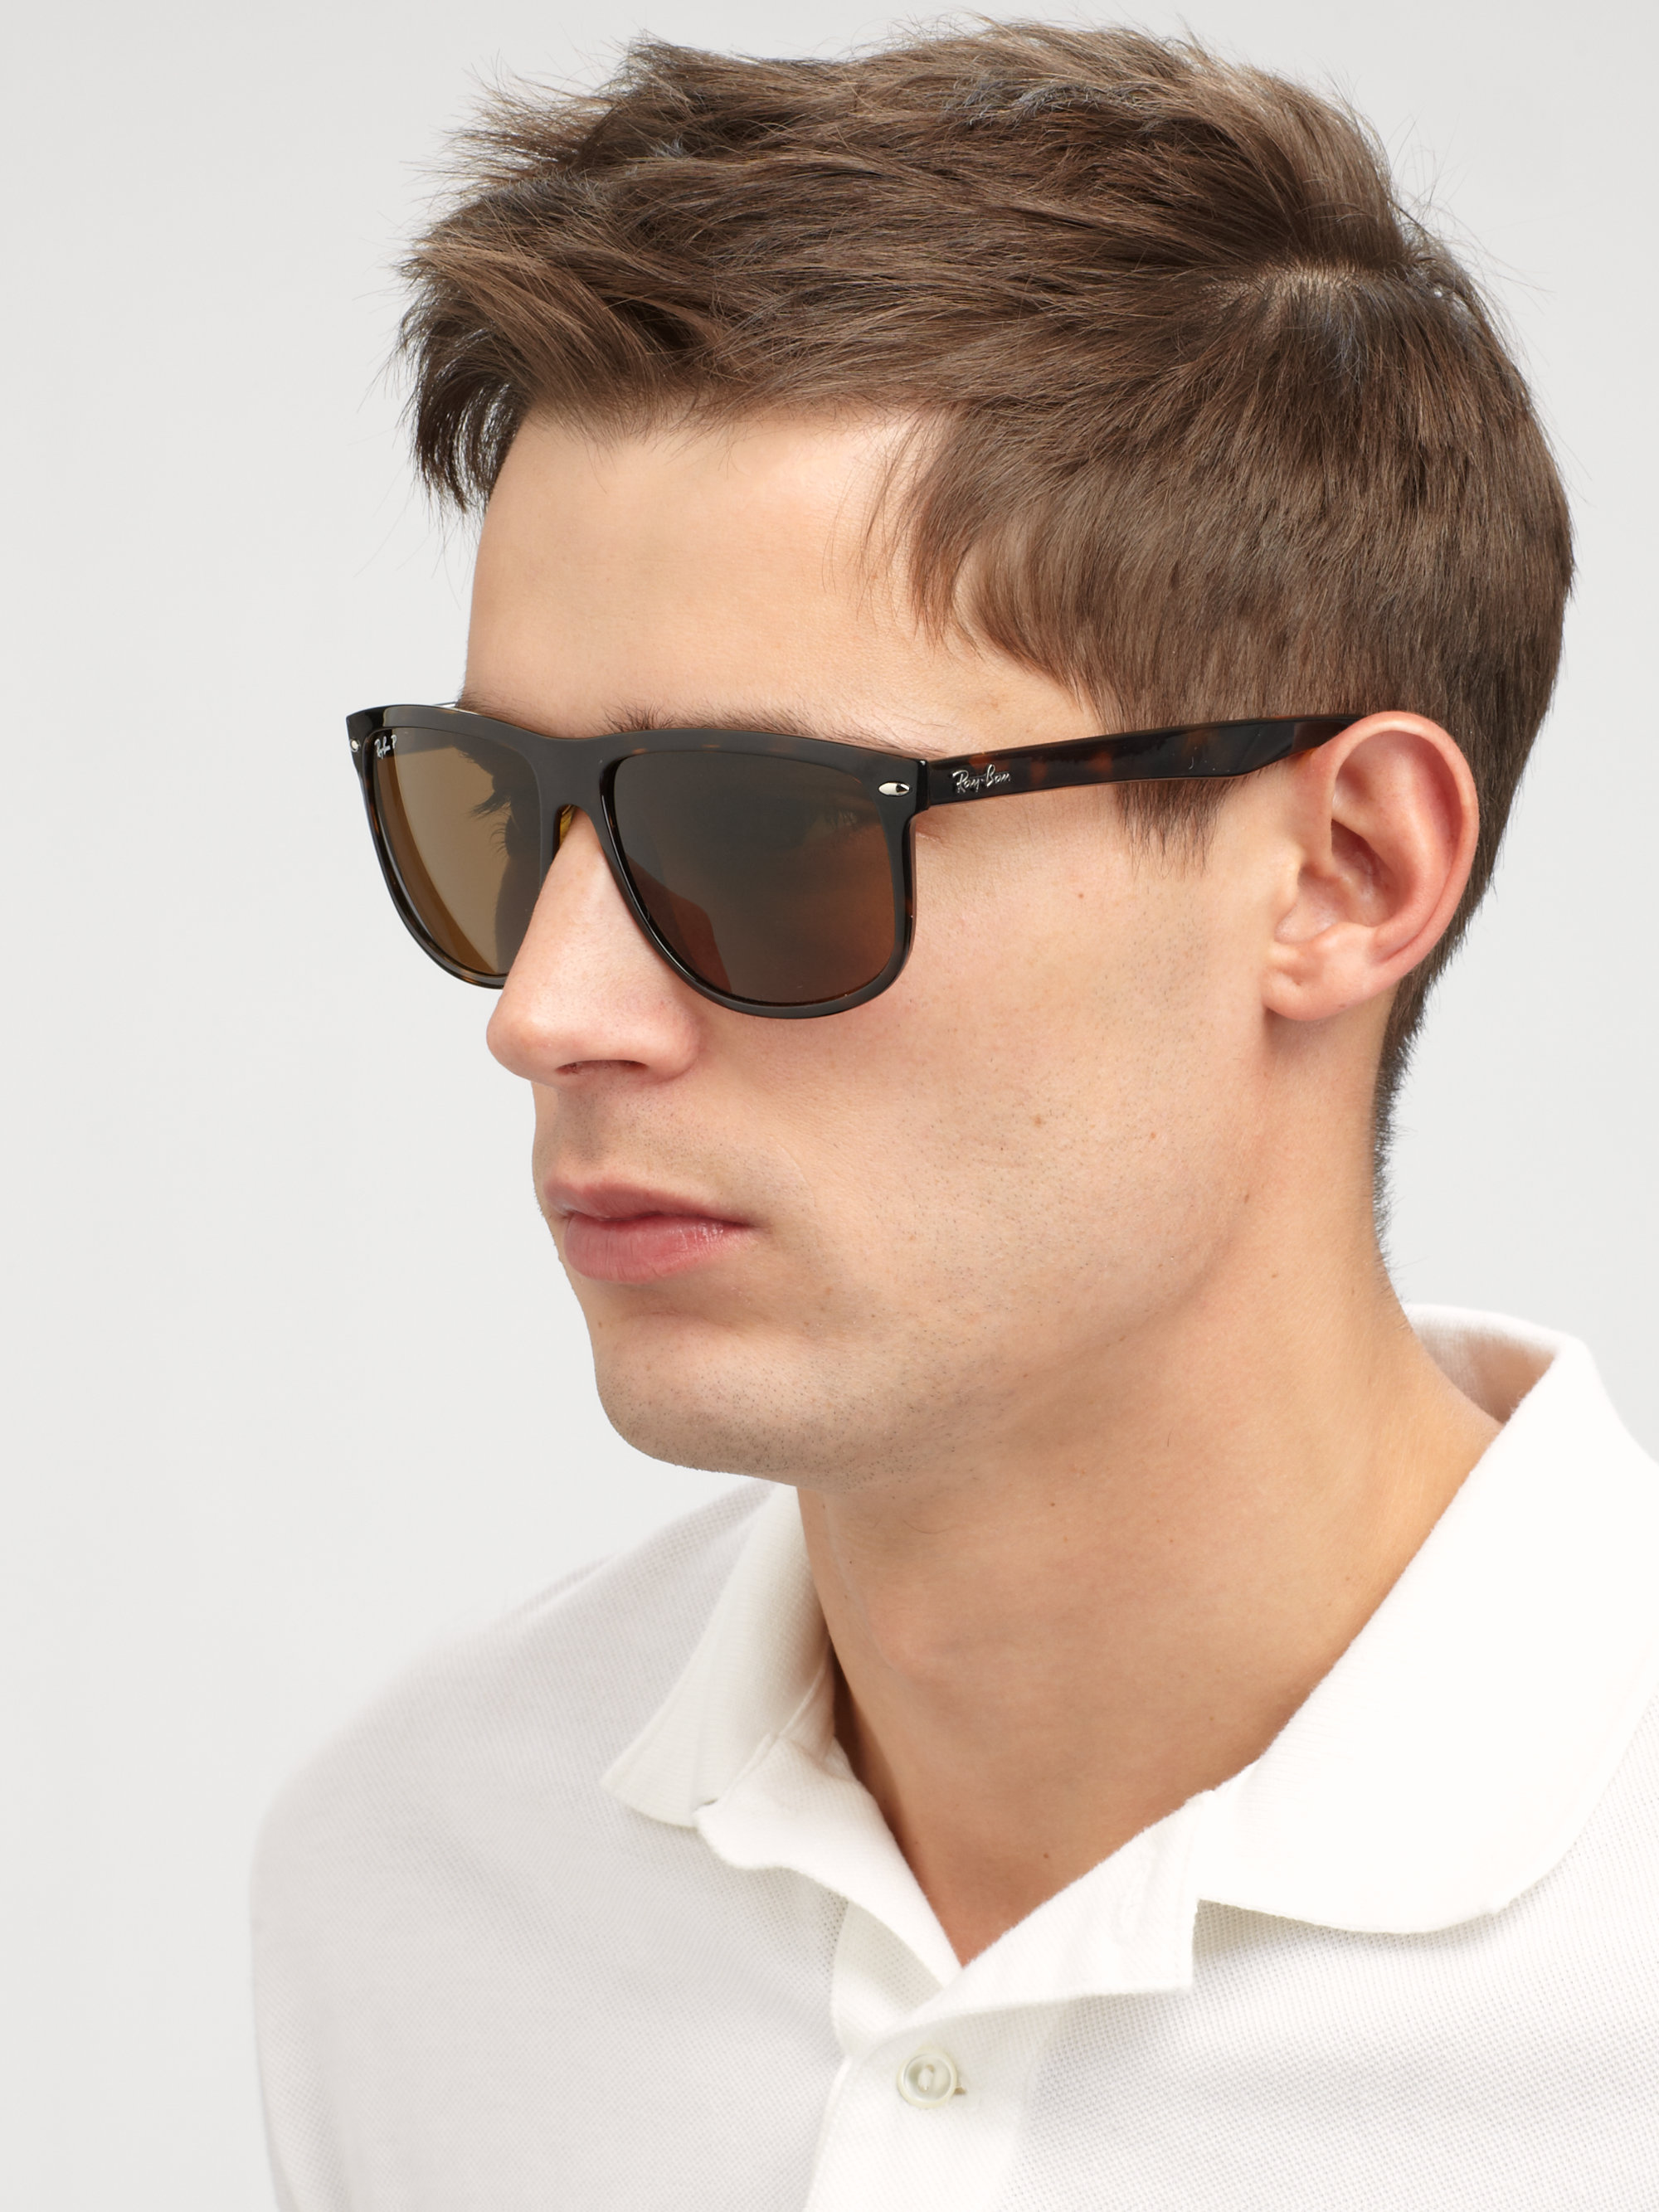 Ray Ban Flat Top Boyfriend Wayfarer Sunglasses In Brown